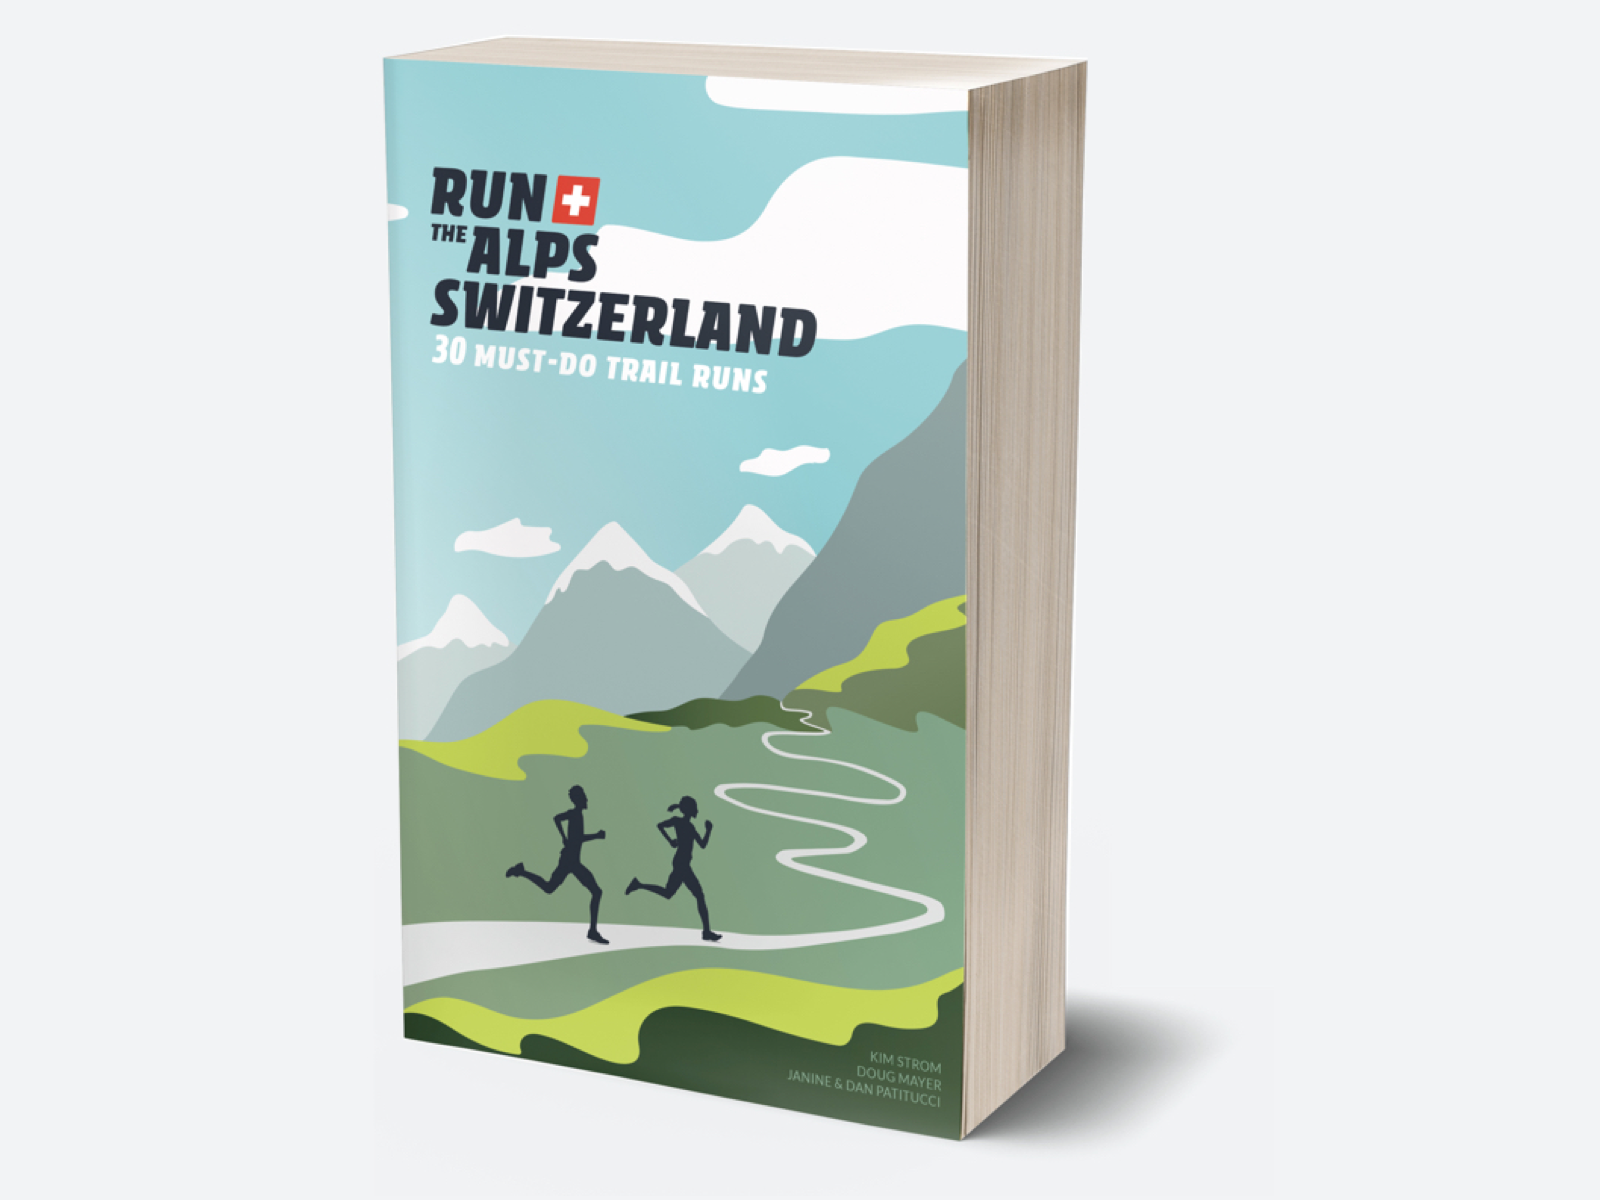 Run the Alps Switzerland 30 Must-Do Trail Runs - Run the Alps Switzerland features 30 must-do trail runs that will appeal to novices and experts alike. Dozens of routes where researched, from Arolla to Zermatt, to find the best trail running the Swiss Alps have to offer. The book is an inspiring piece of work and every single run I did was great. I 100% recommend this book and online resources from Run the Alps.